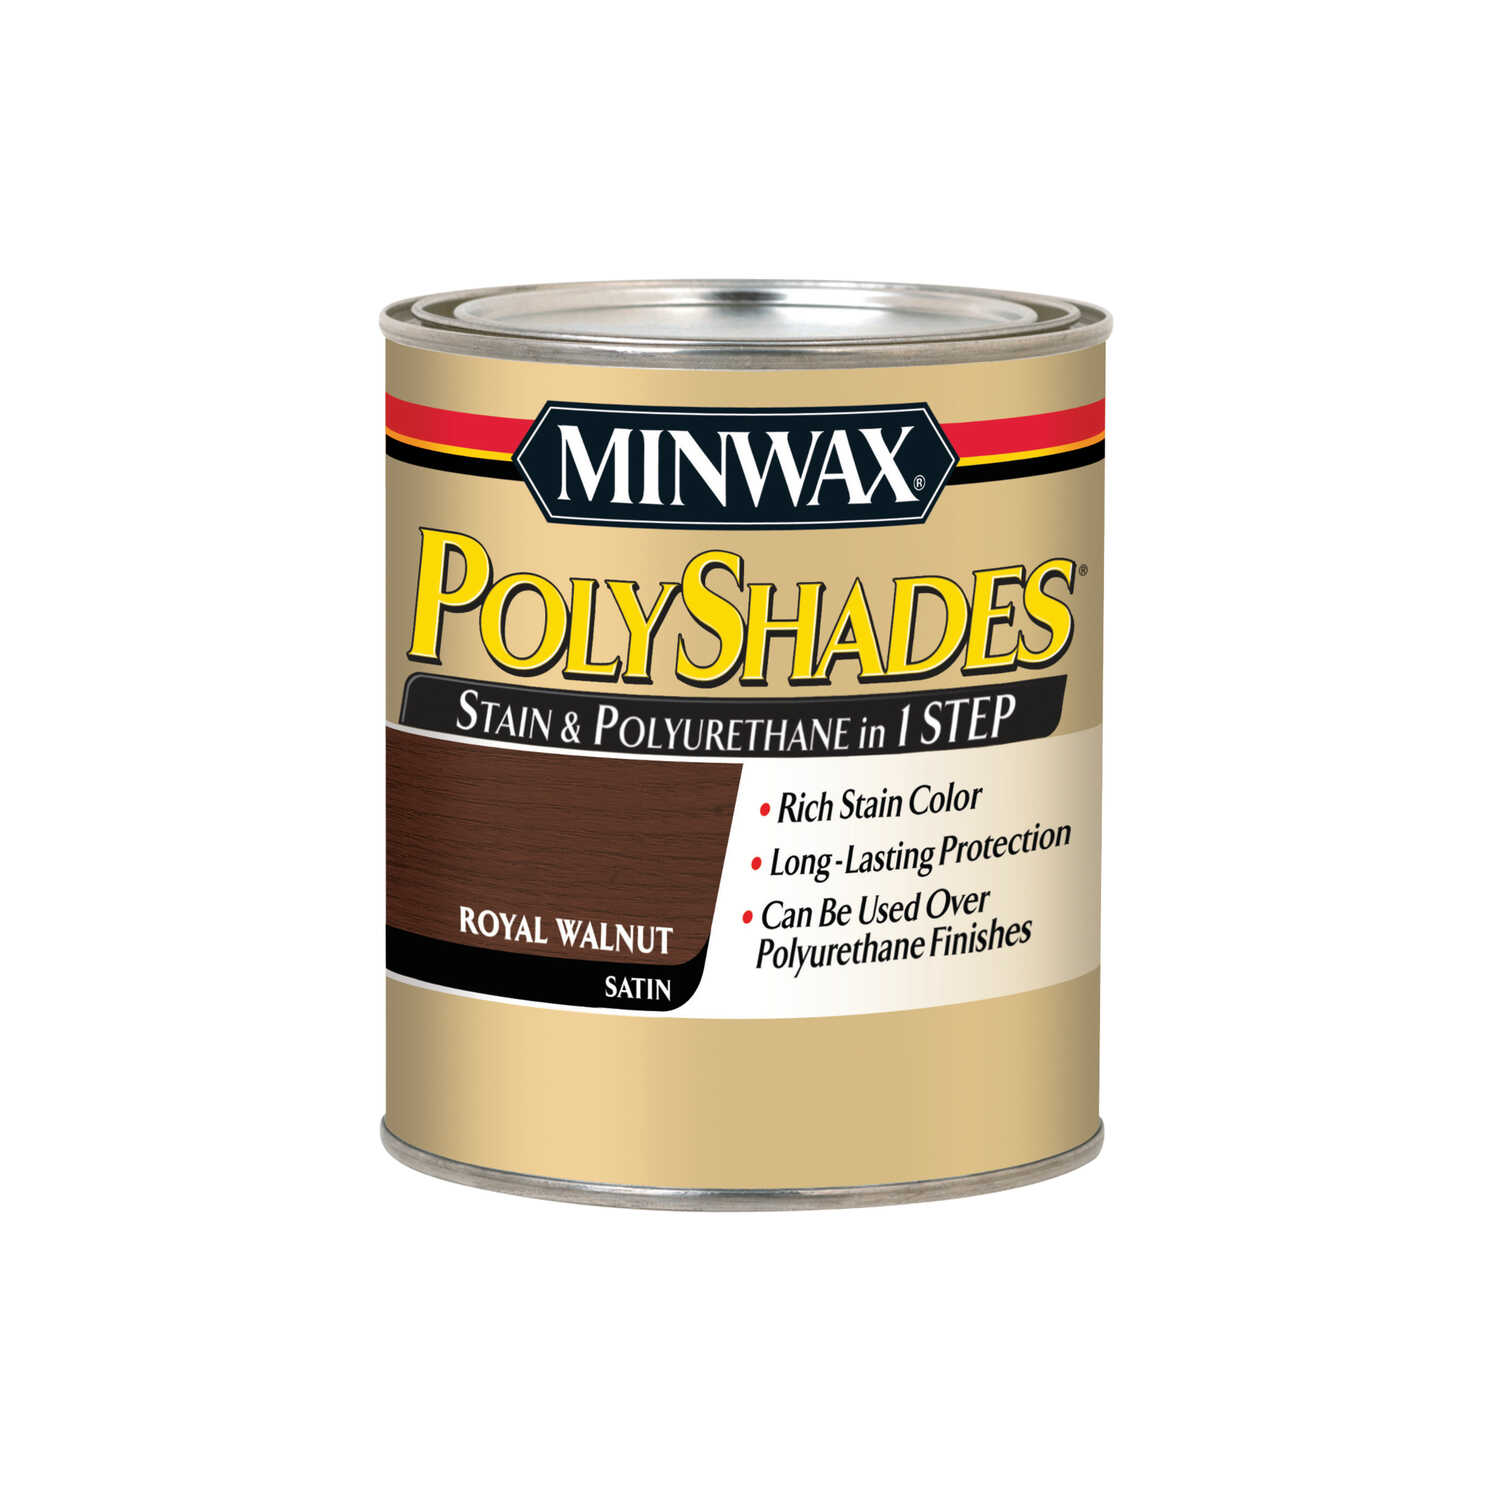 Minwax  PolyShades  Semi-Transparent  Satin  Royal Walnut  Oil-Based  Stain  1 qt.